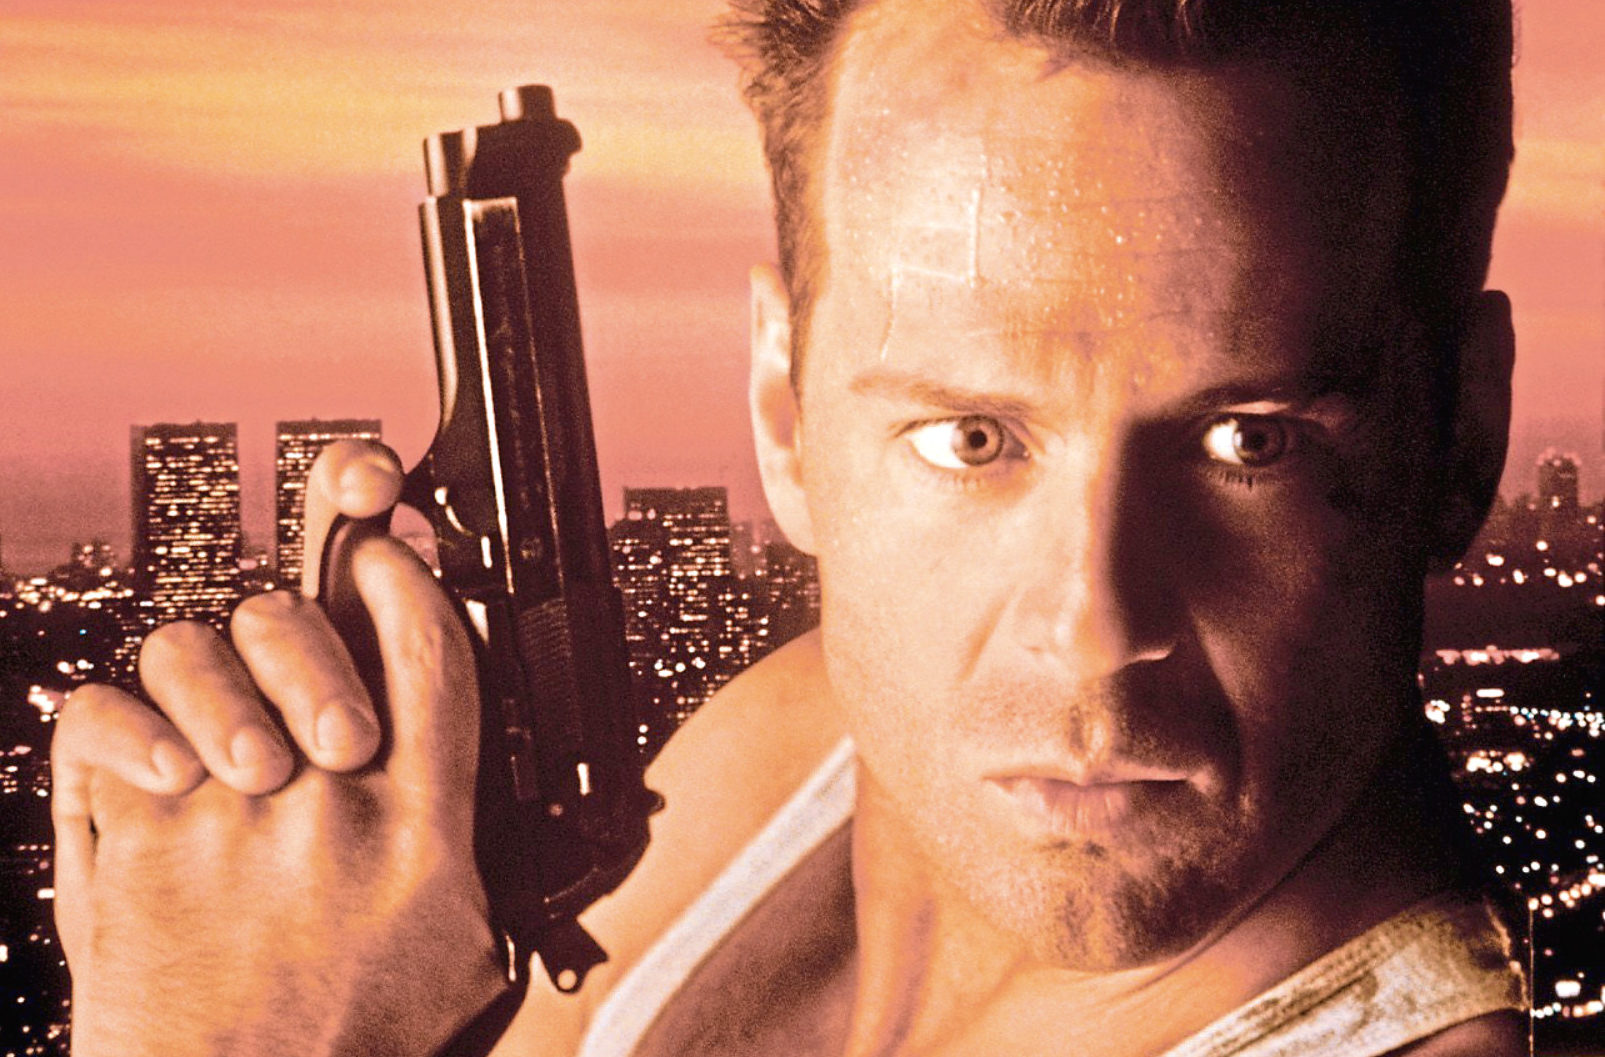 Bruce Willis in Die Hard (Allstar/20TH CENTURY FOX)